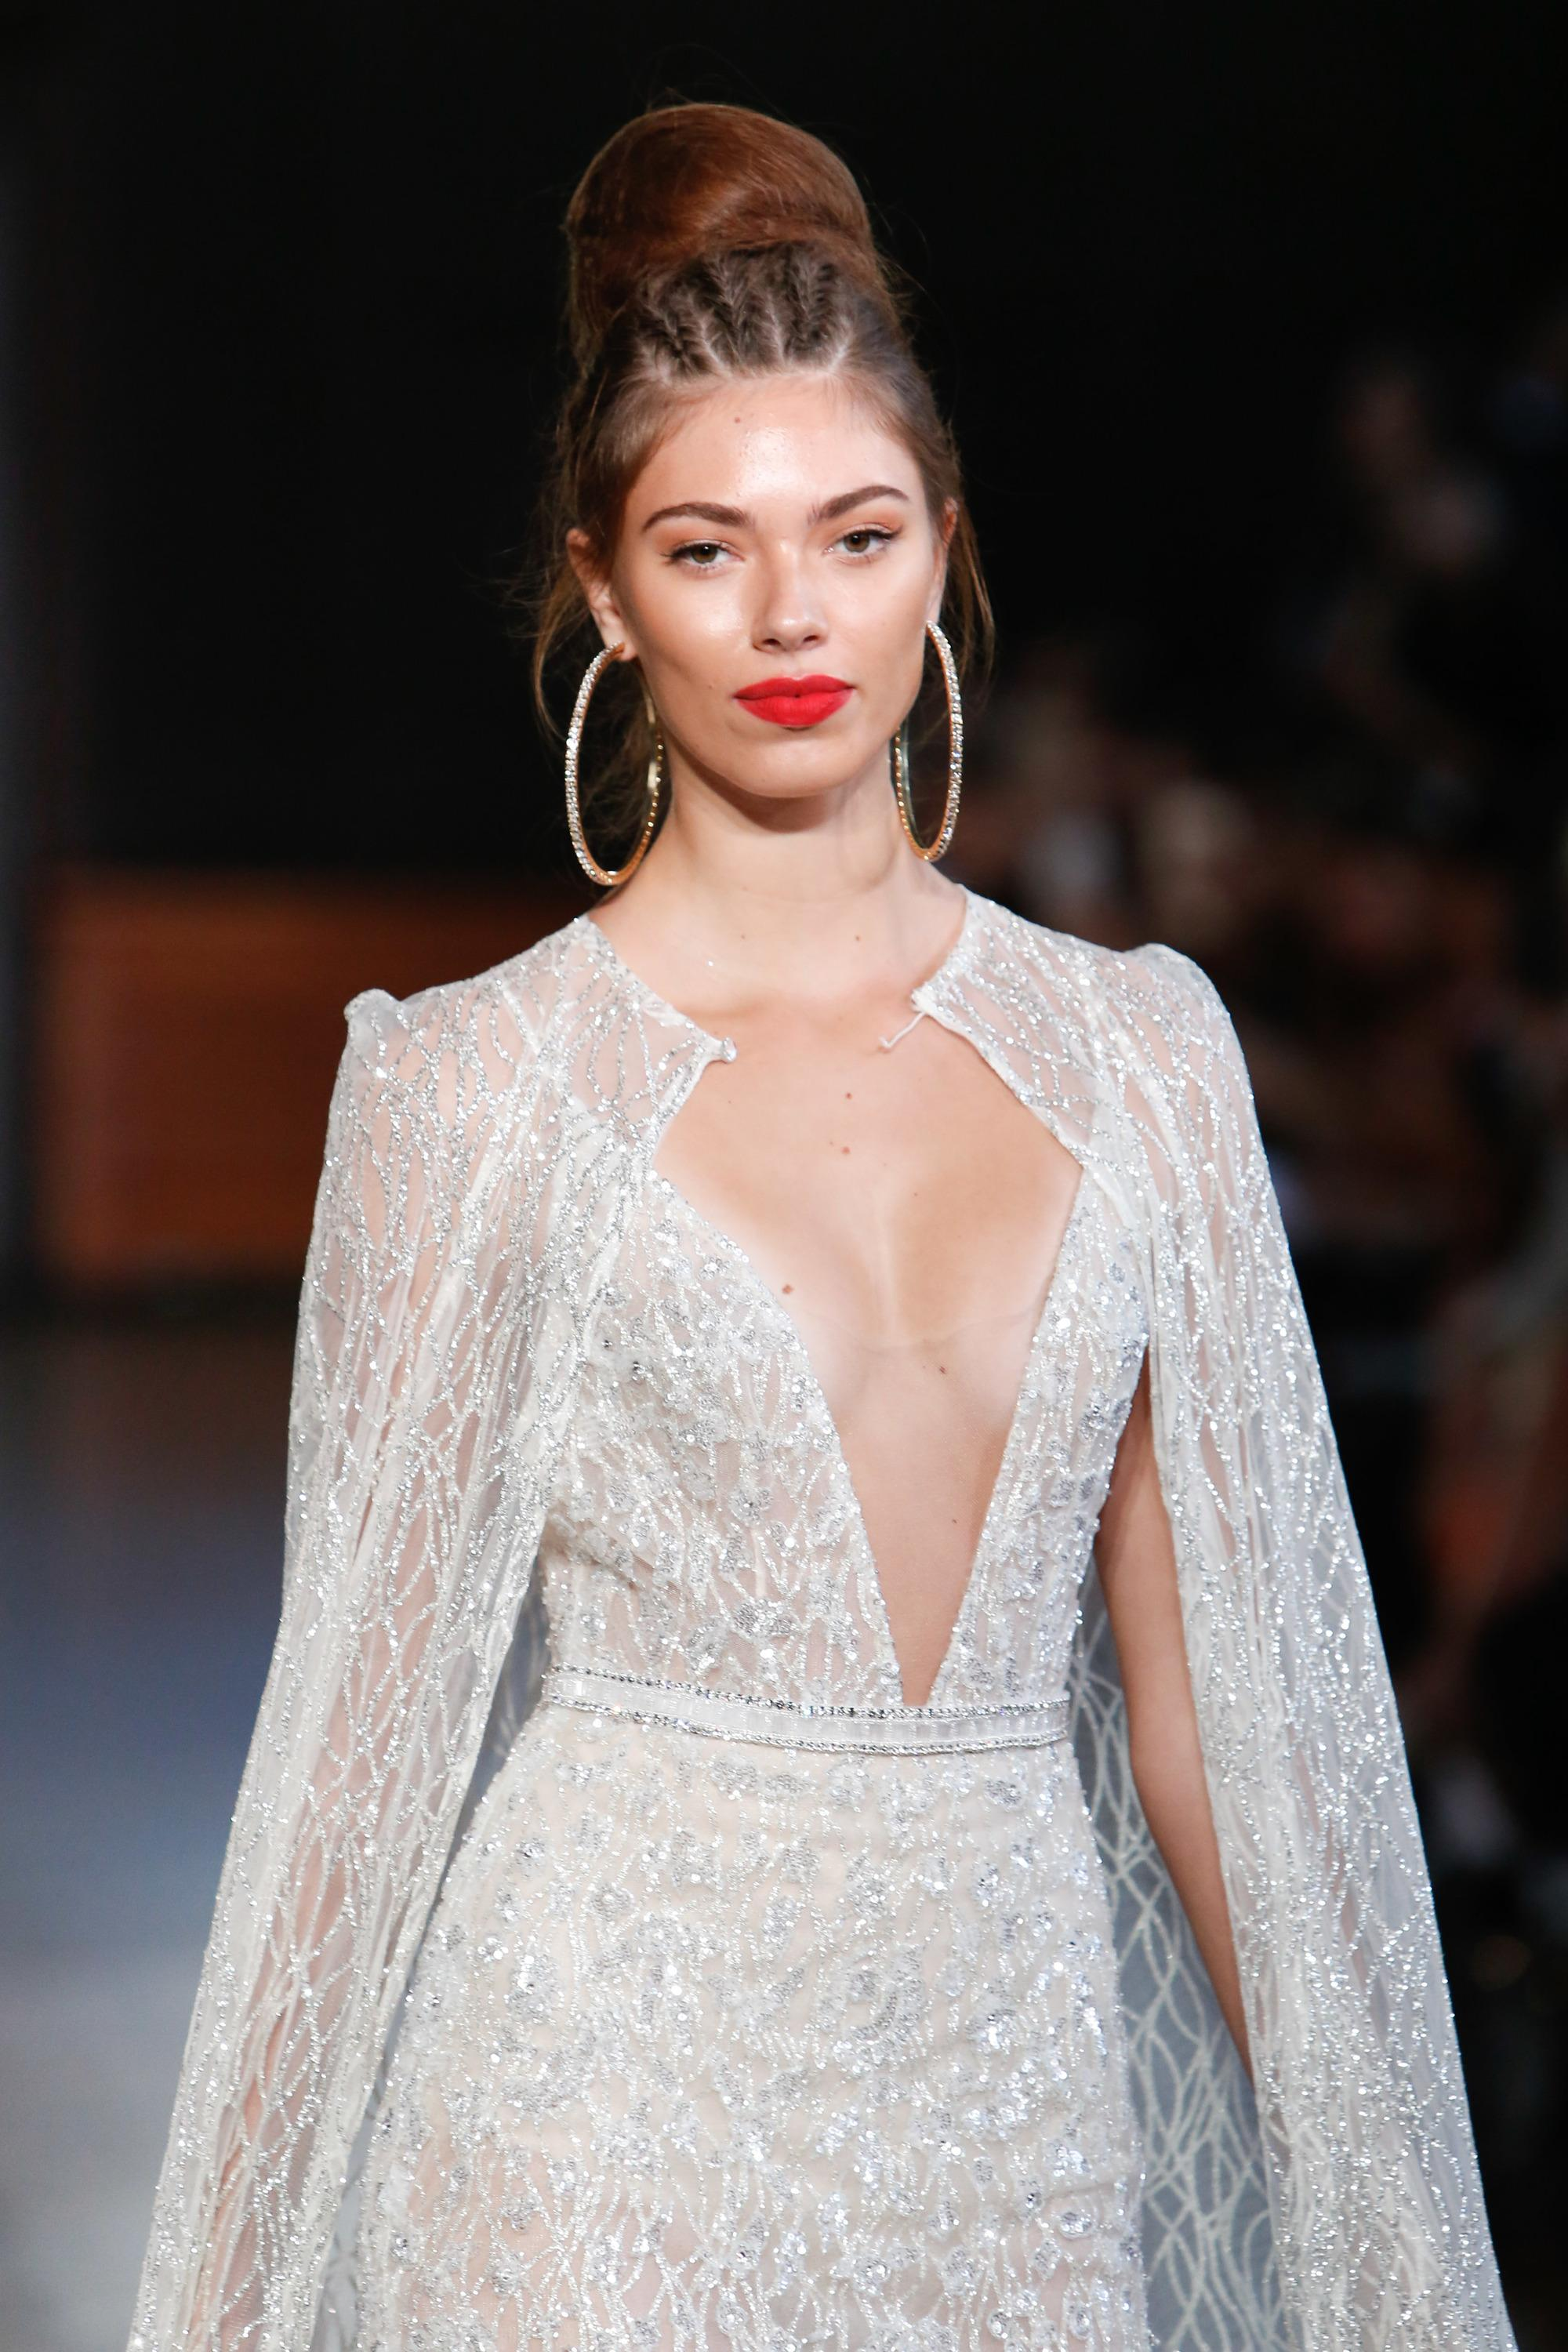 woman on the runway at bridal fashion week with a braided bun